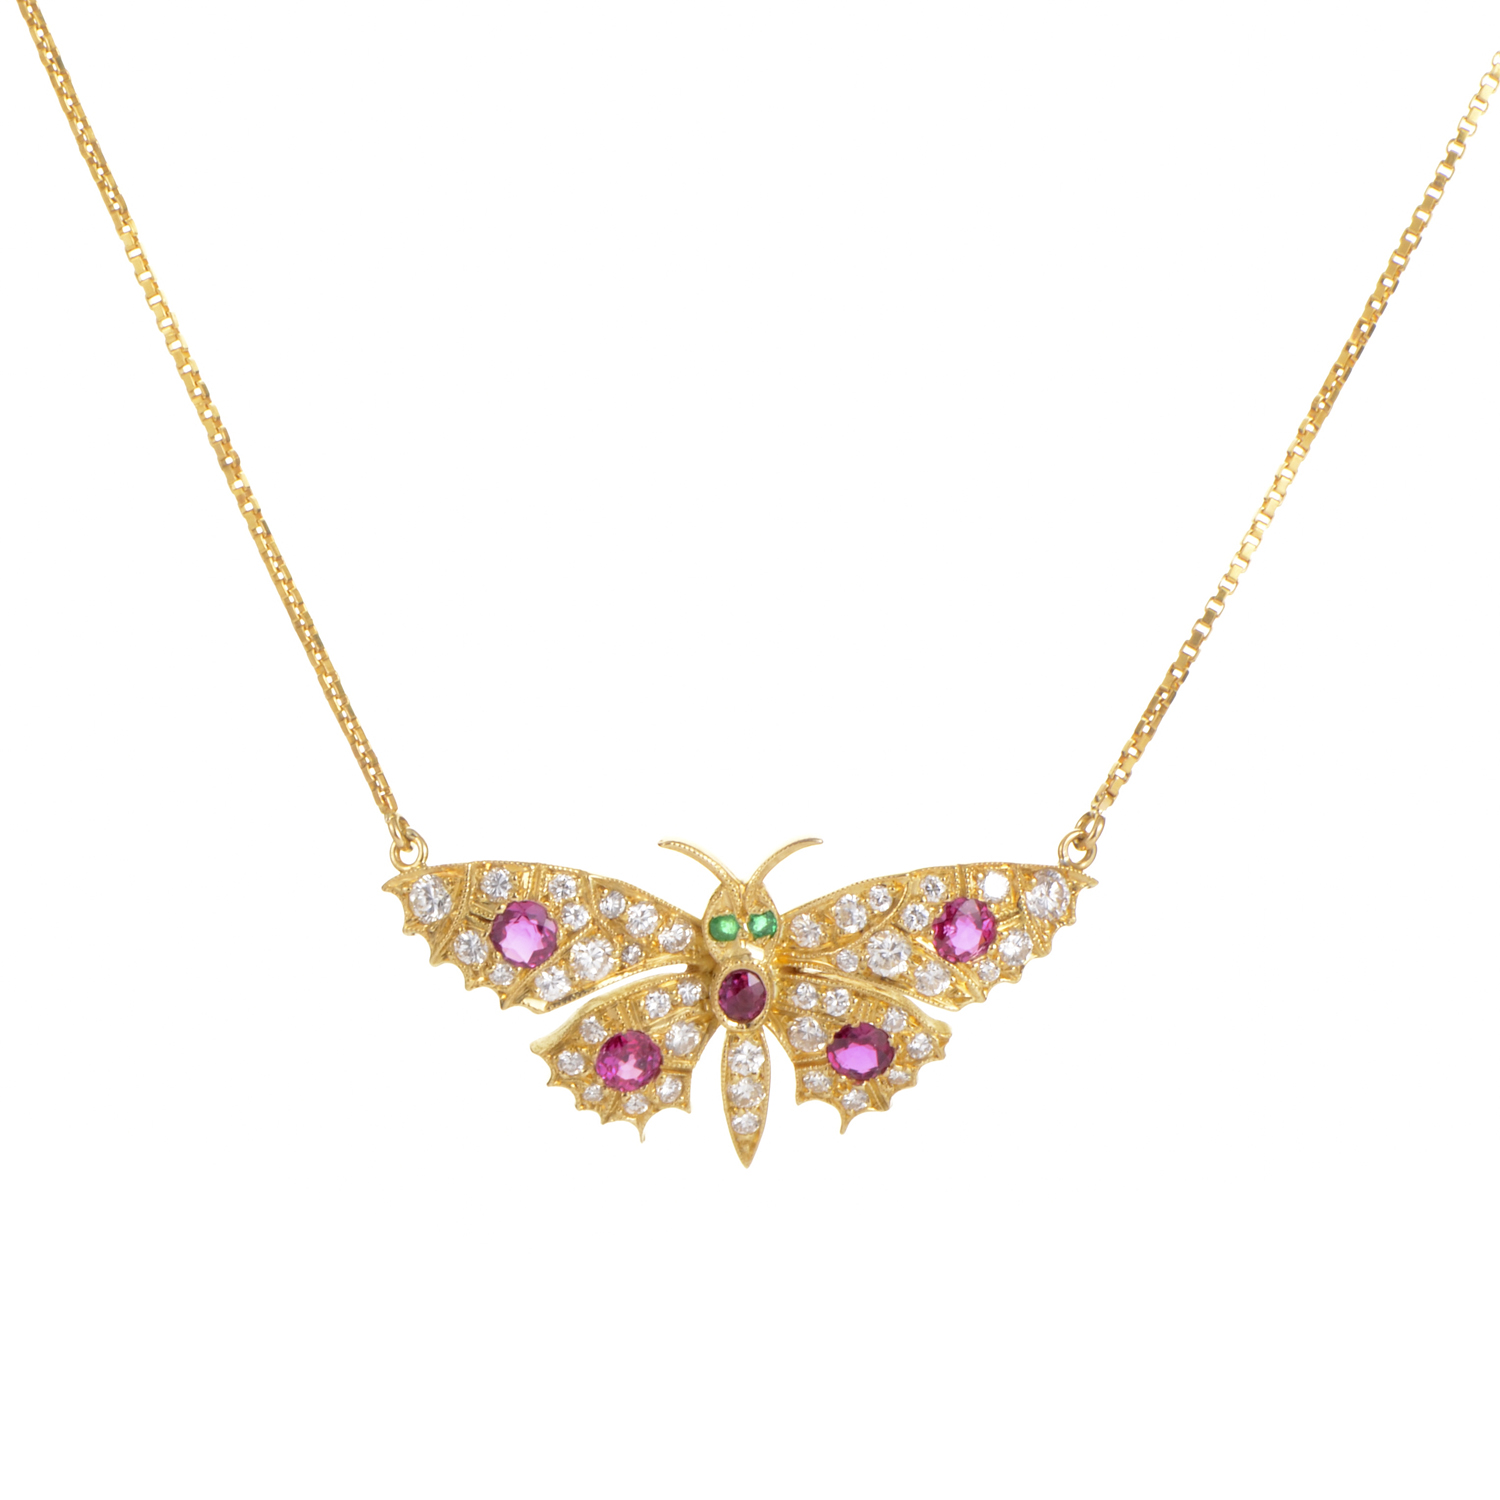 Garrard 18K Yellow Gold Precious Gemstone Butterfly Necklace